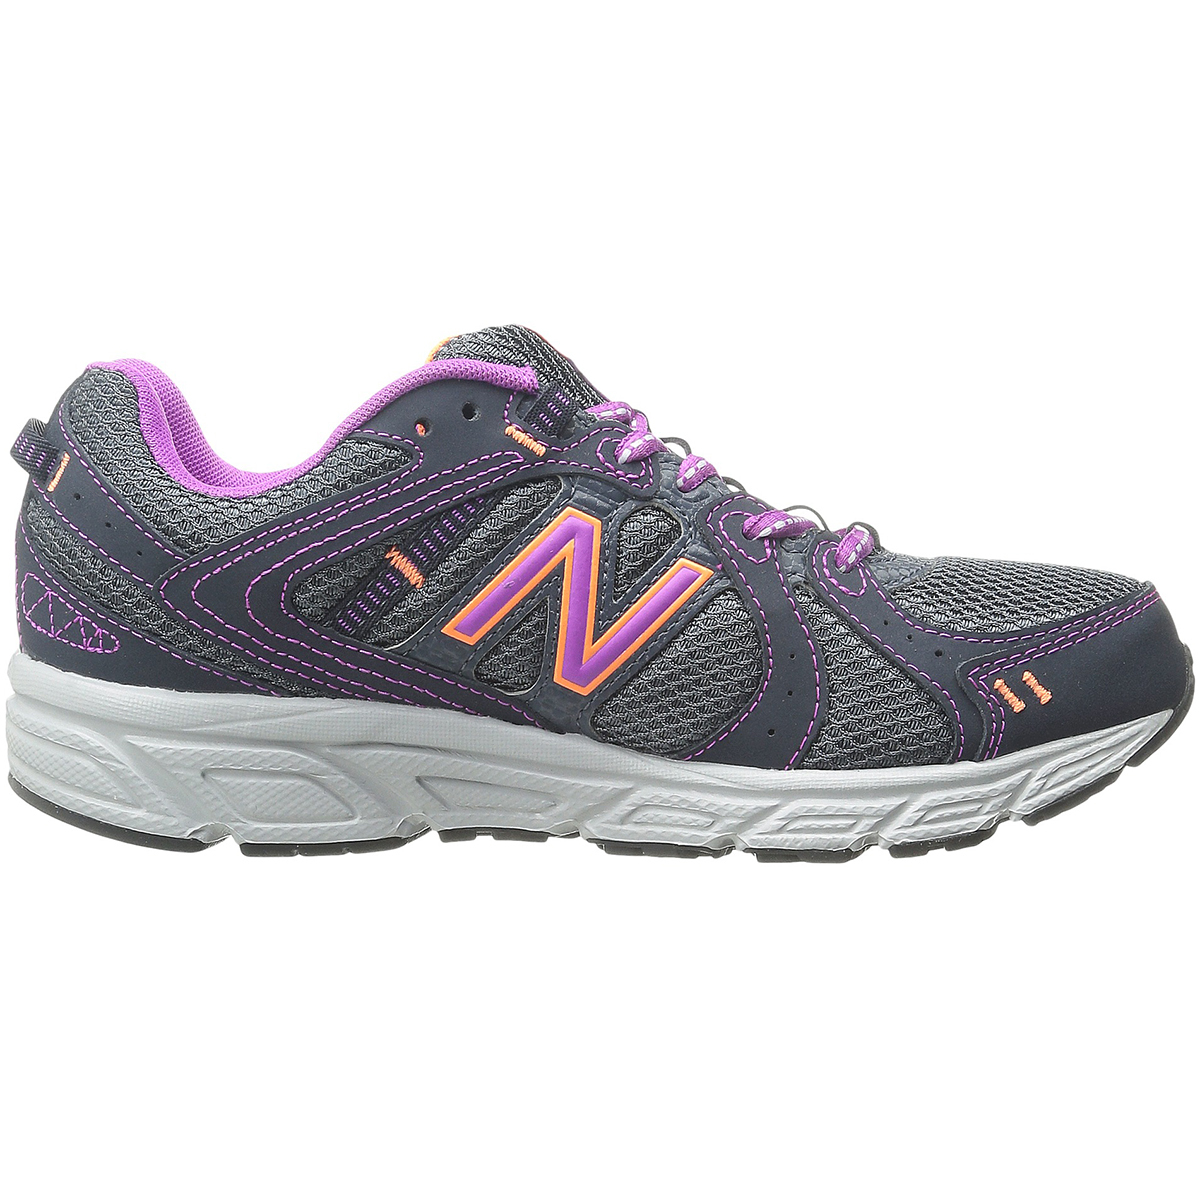 New Balance Women's 402 Sneakers, Wide - Black, 7